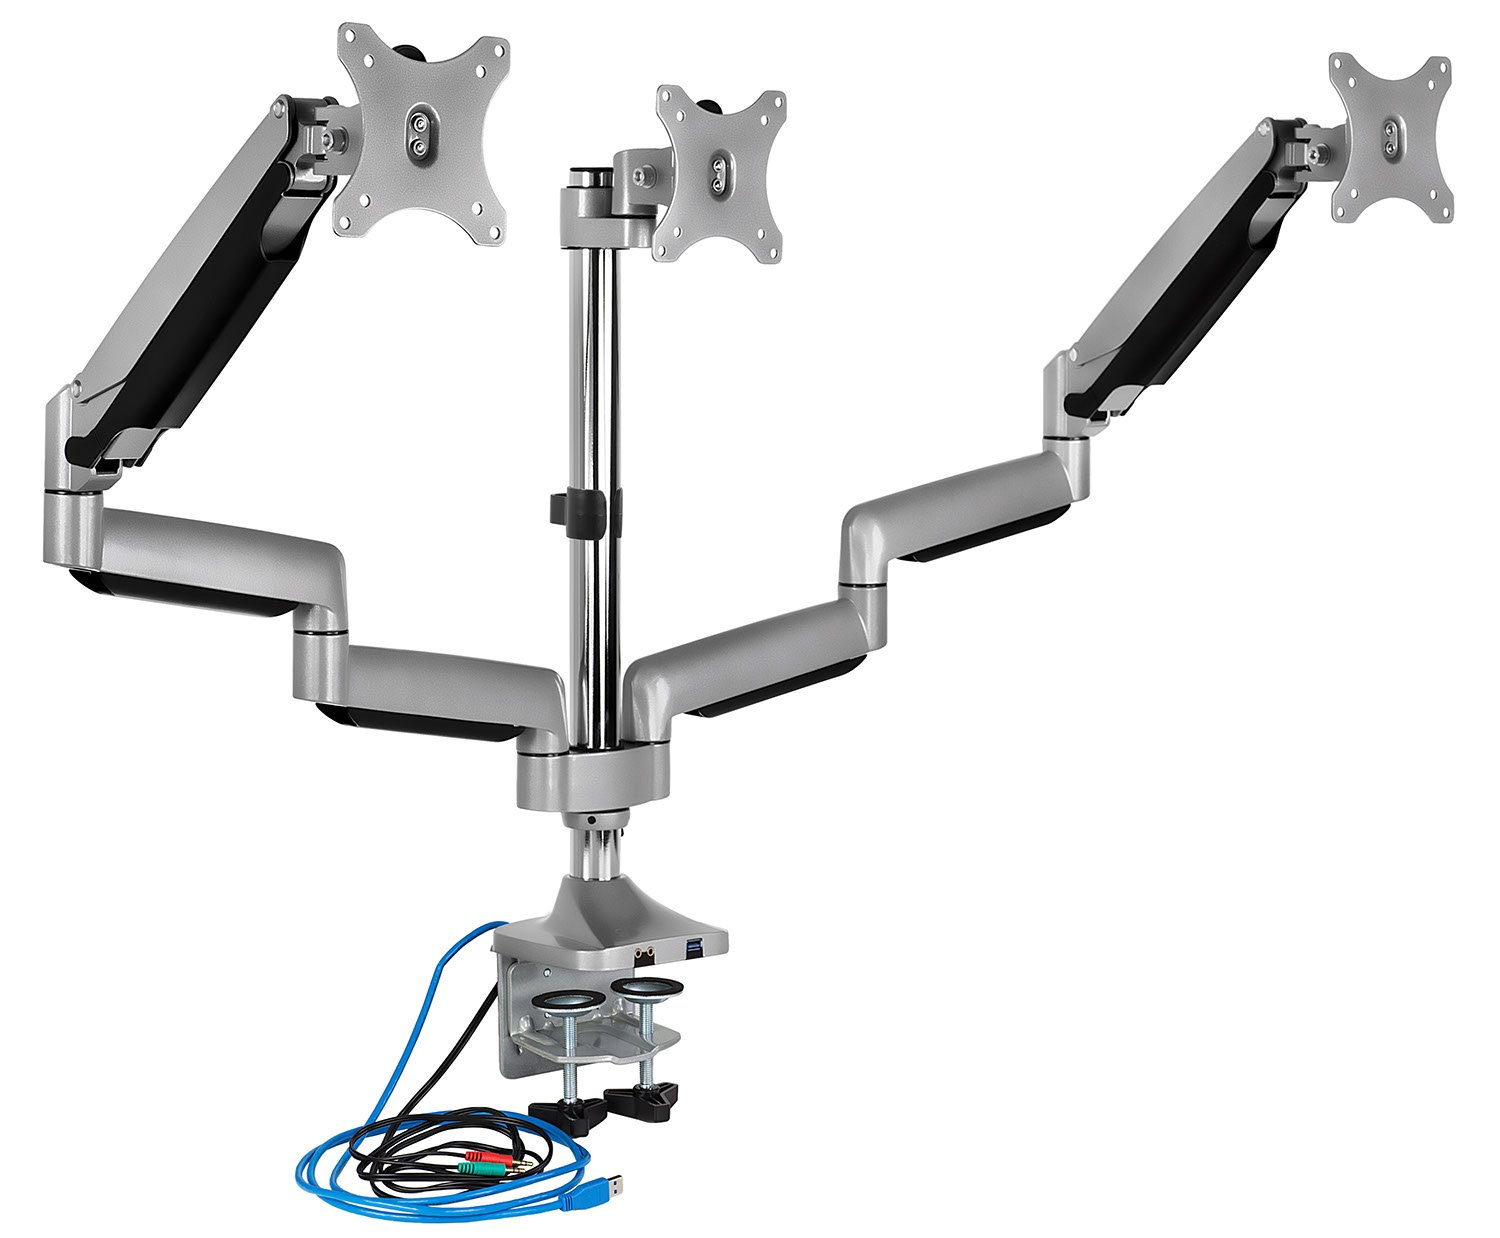 Mount-It! Triple Monitor Mount With USB Port, Height Adjustable 3 Monitor Arm Desk Stand for 24 27 30 32 Inch LED LCD Displays (MI-2753) by Mount-It!